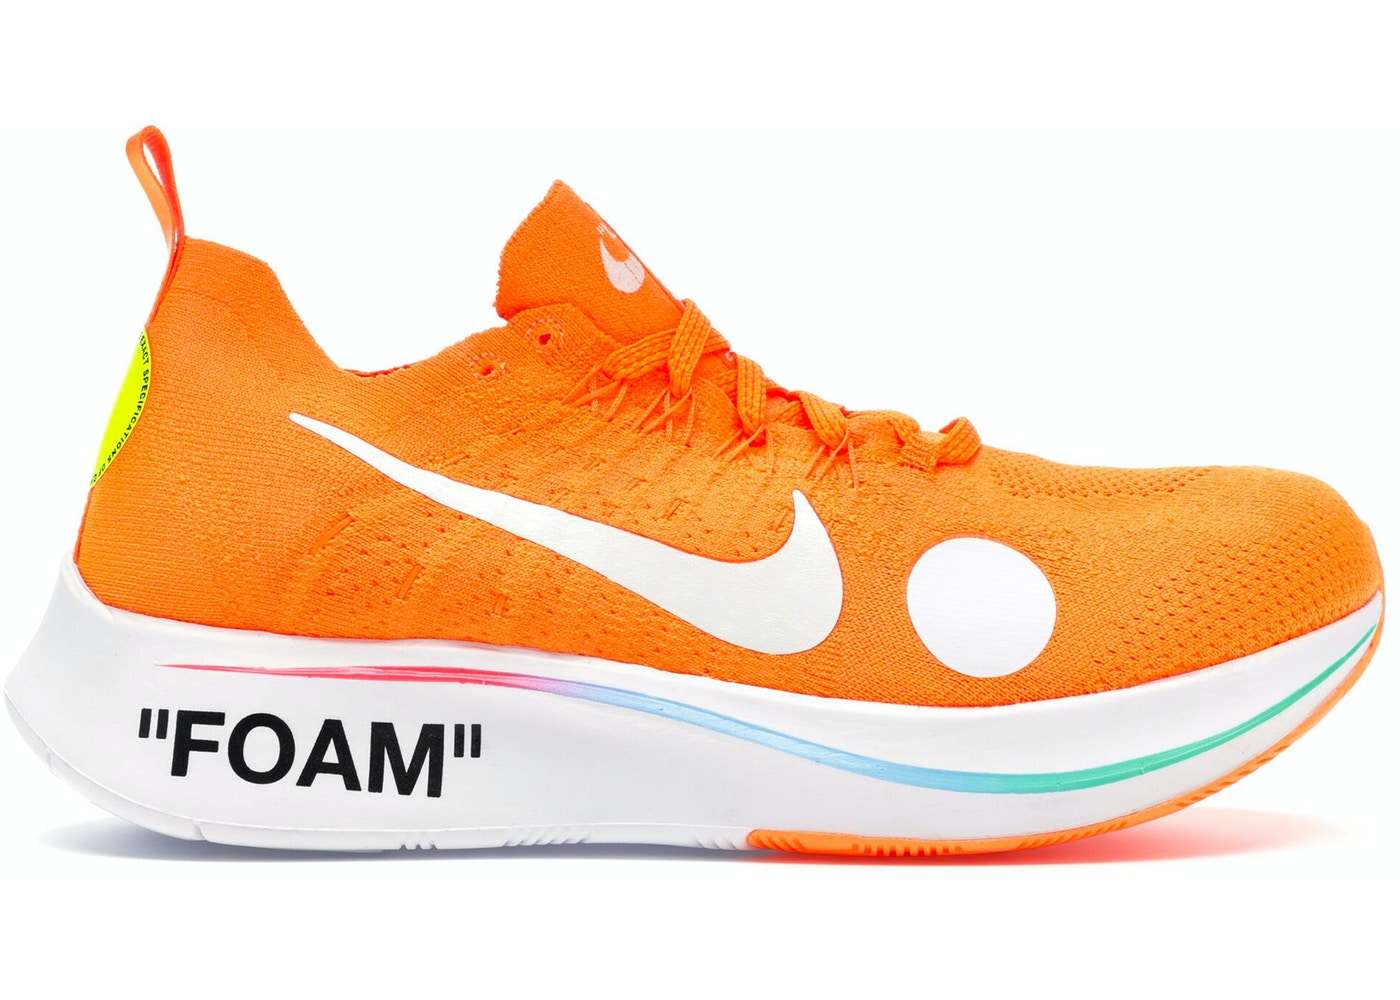 f14818015a1c3 Nike Zoom Fly Mercurial Off-White Total Orange - AO2115-800